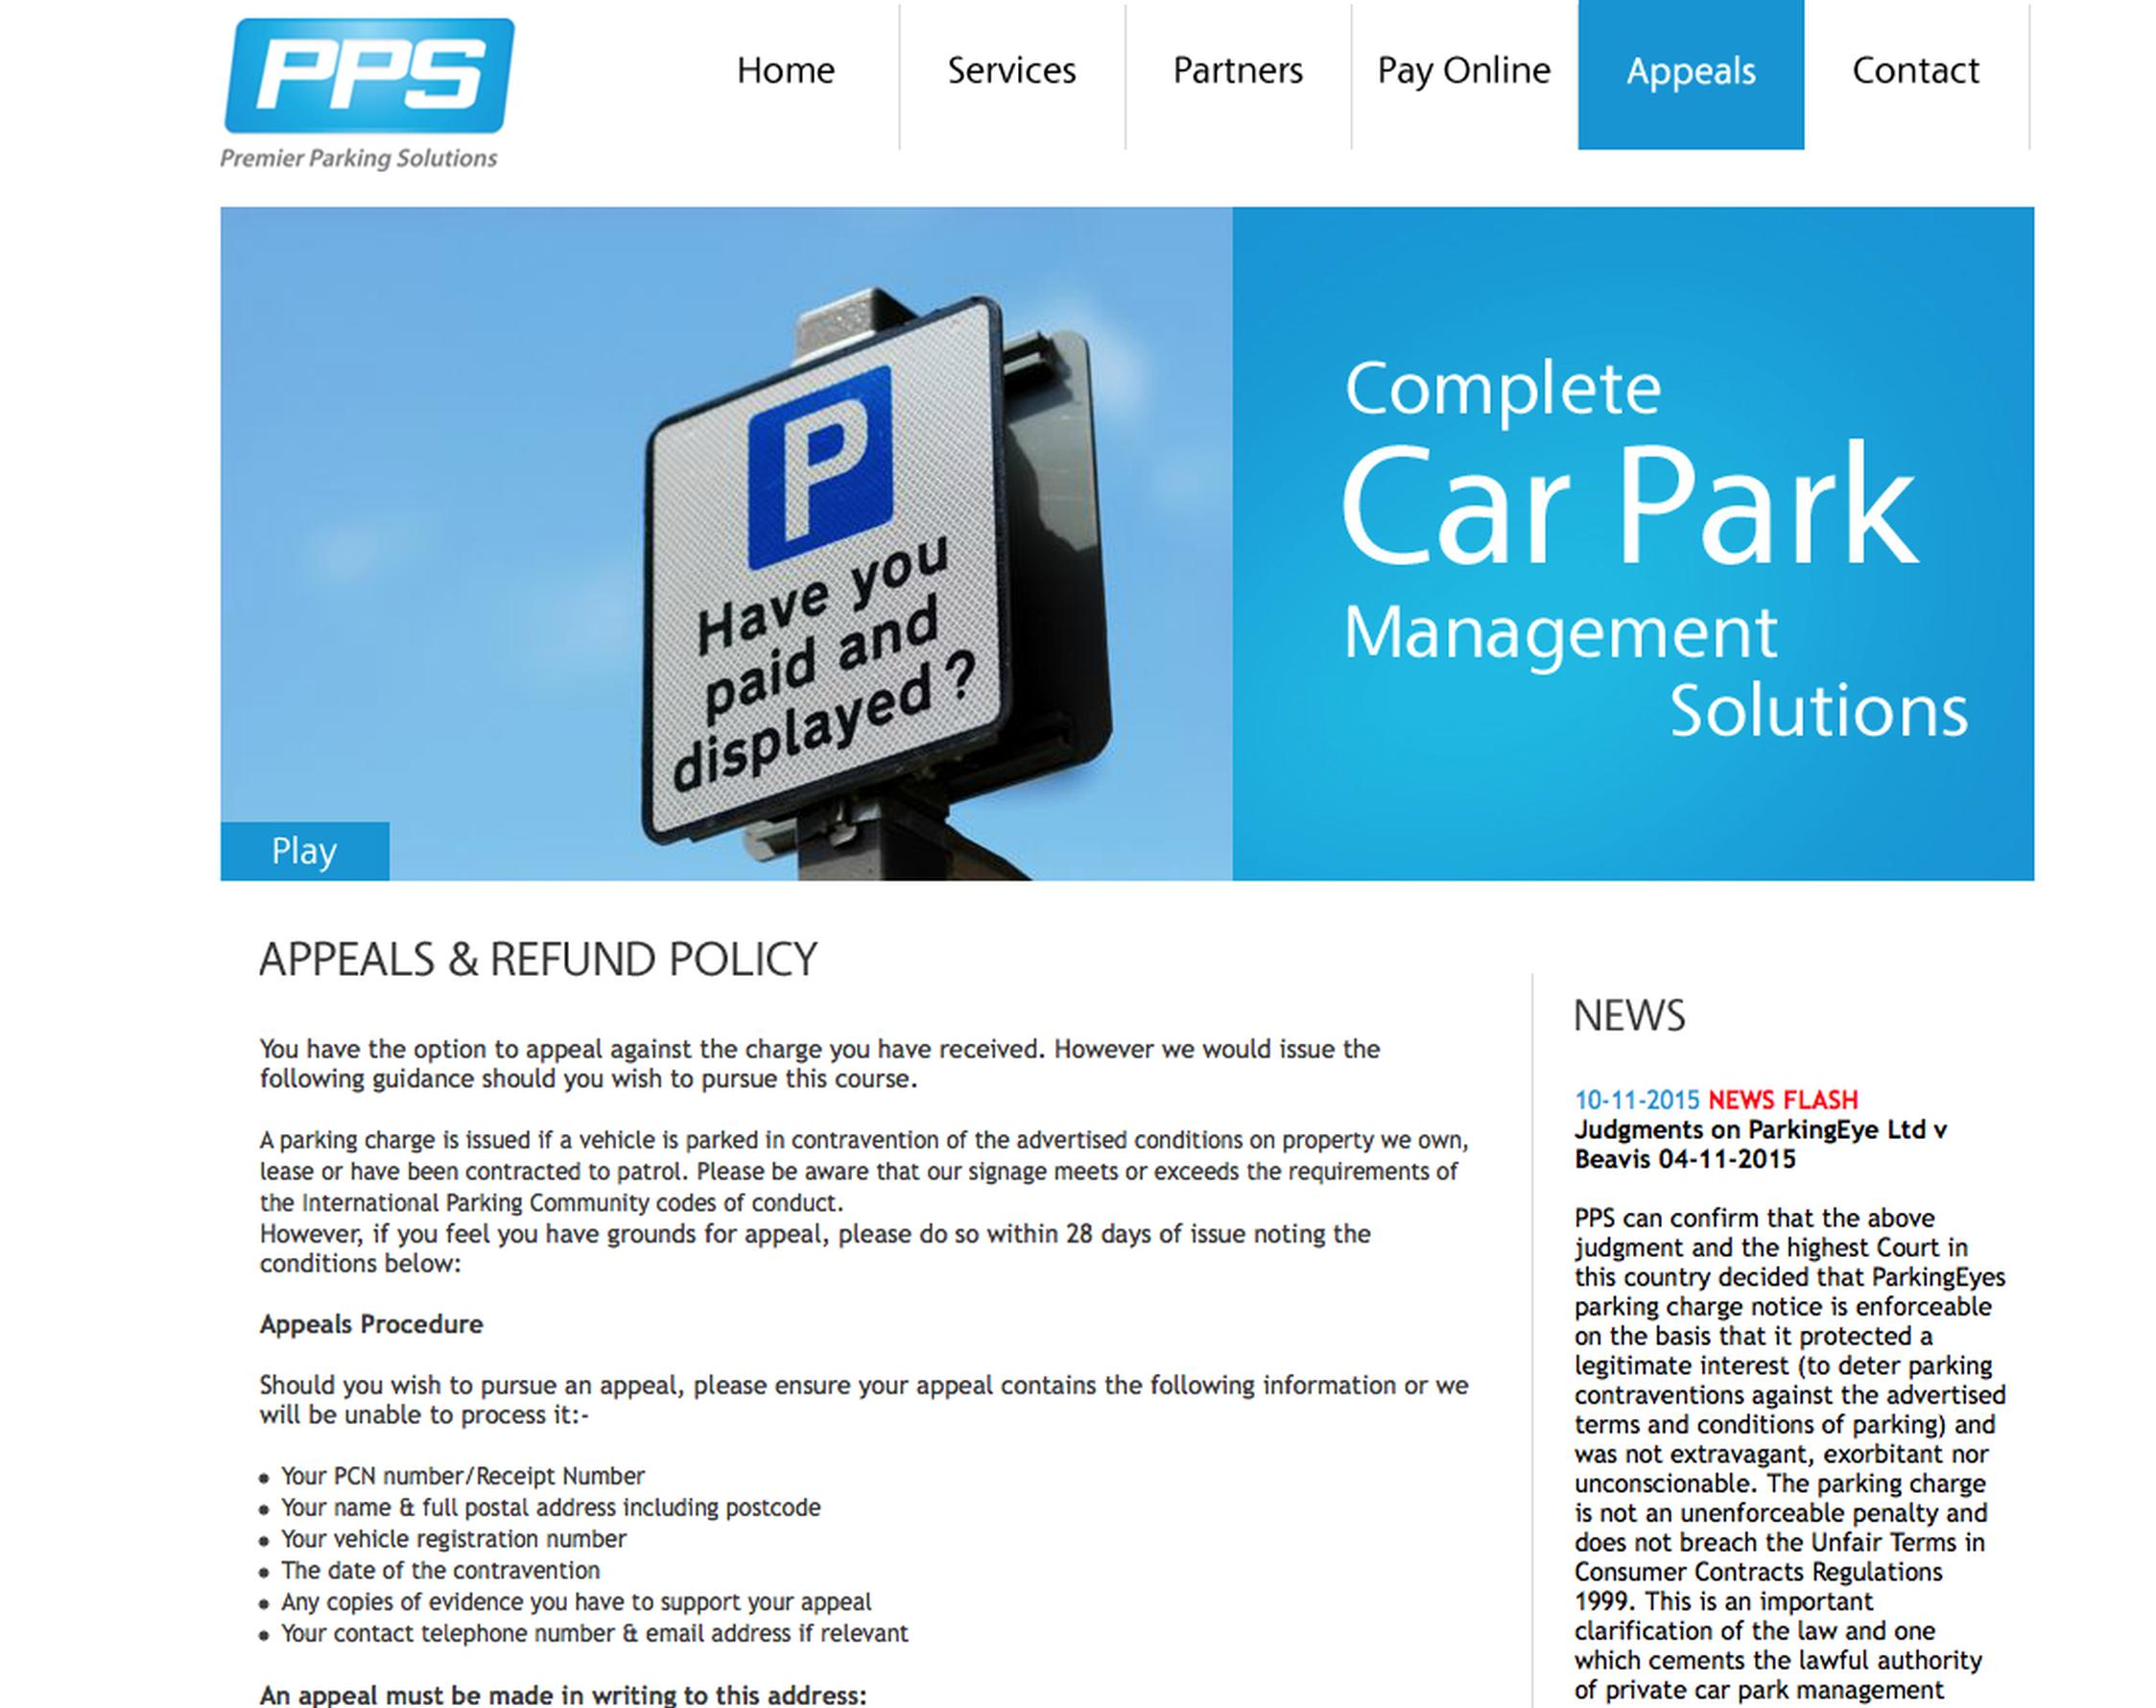 Premier stands by PCNs issued in Plymouth car park